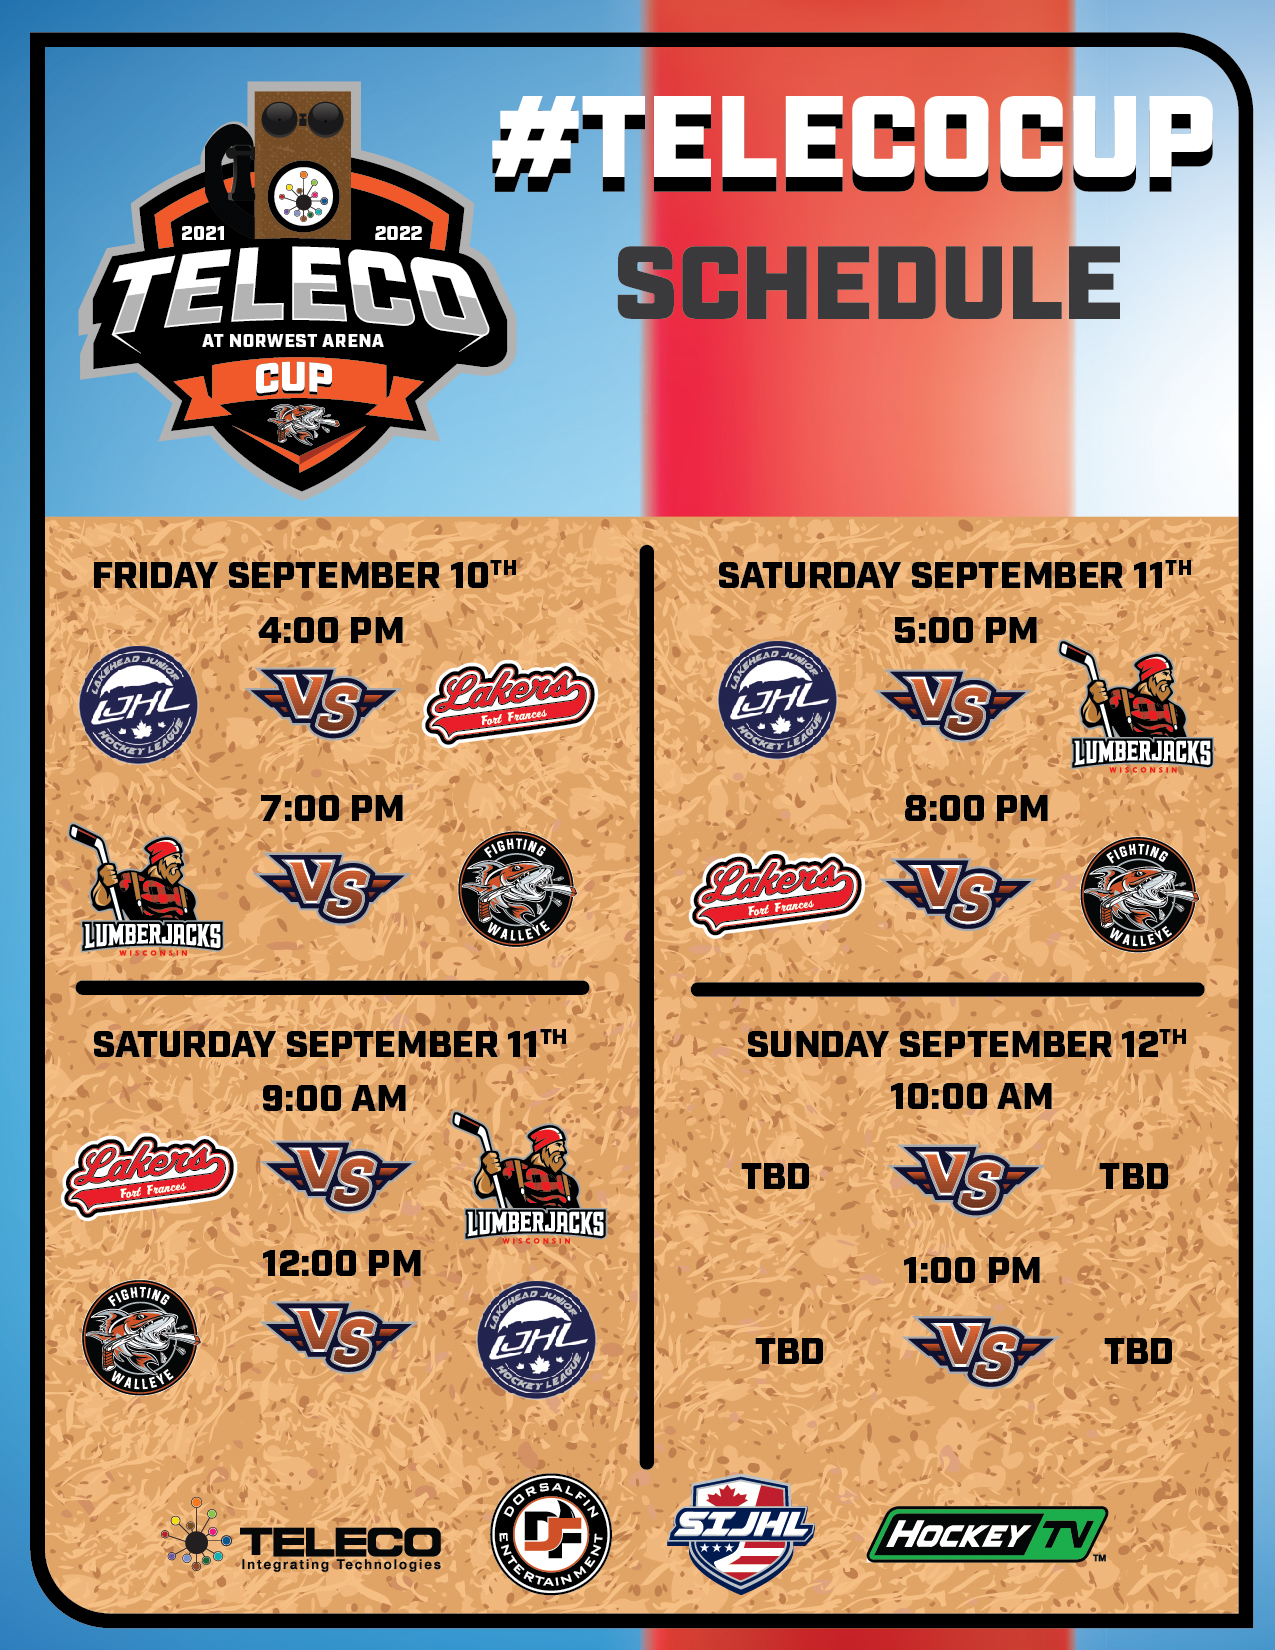 #TelecoCUP Schedule